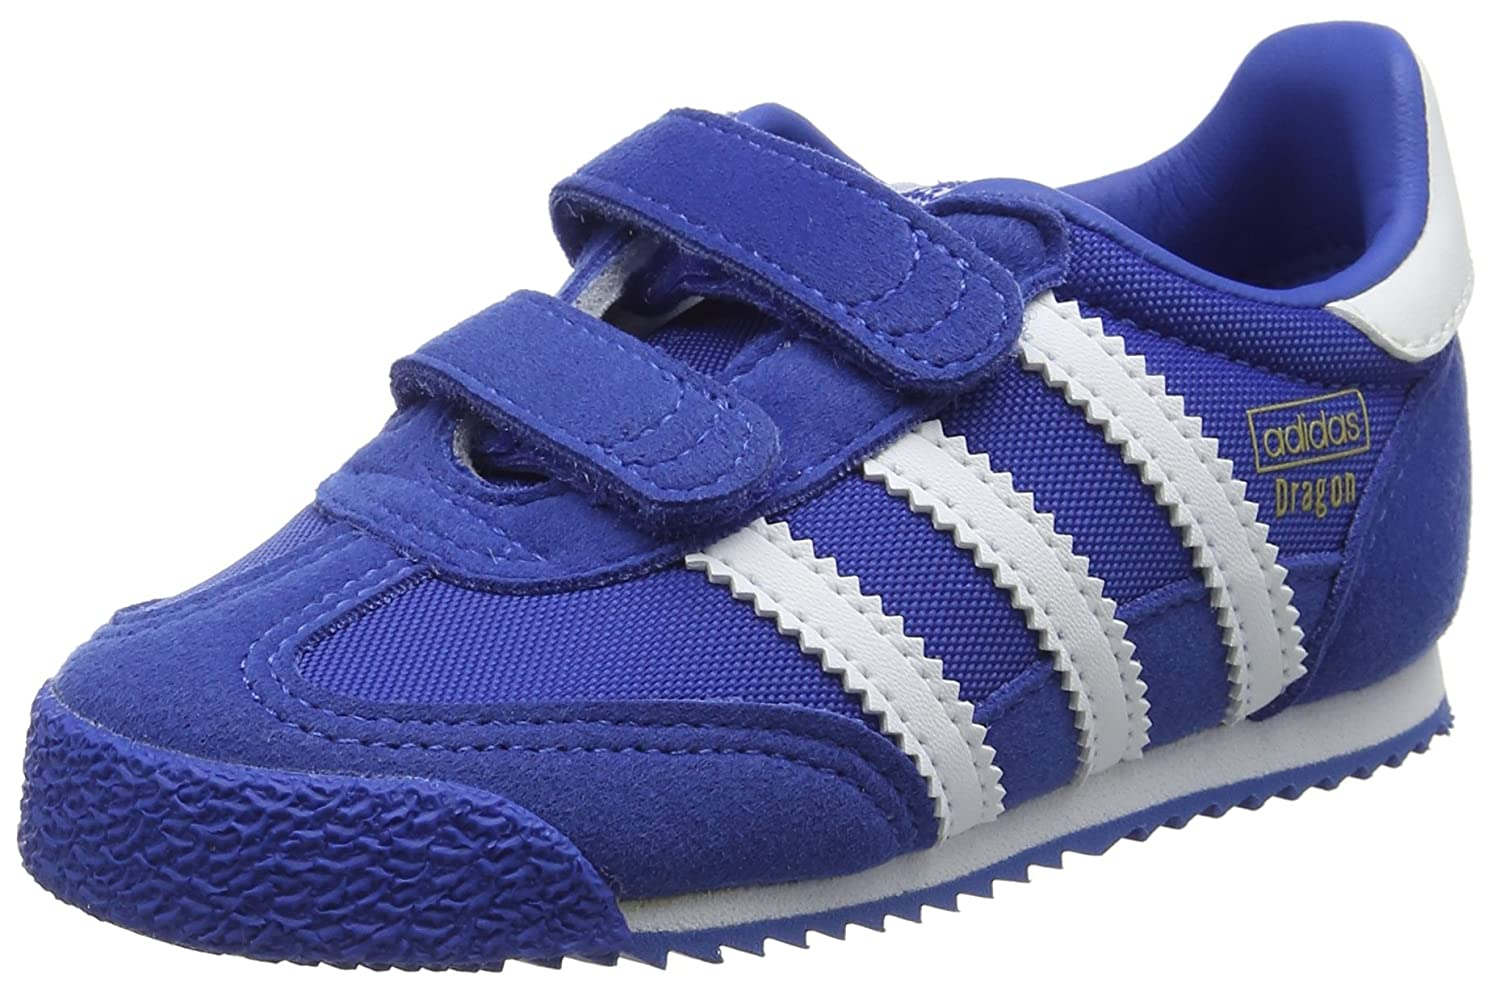 Amazon.com: adidas Originals Boy's OG Dragon Trainers 6.5 Infant Blue:  adidas Originals: Shoes